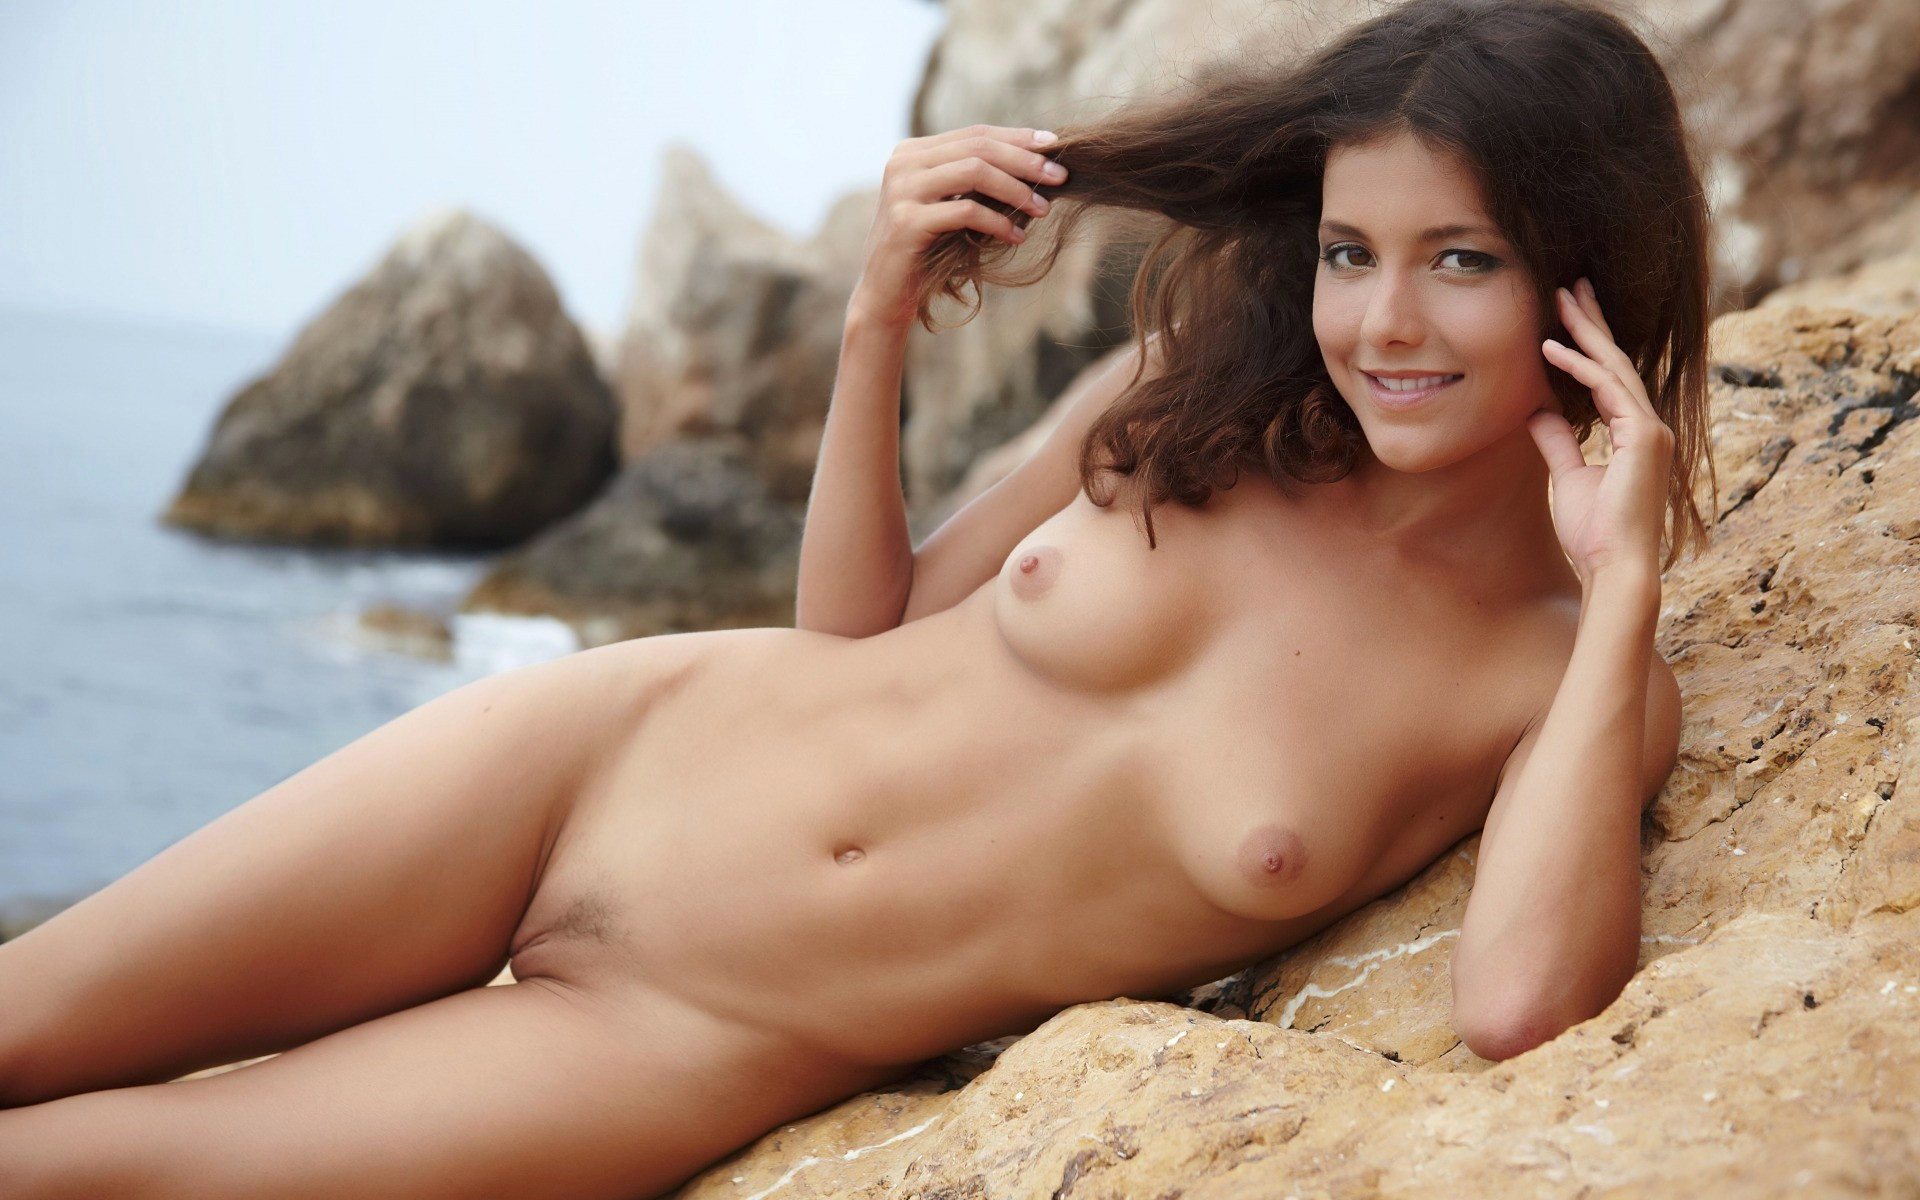 image-of-beautiful-naked-woman-fran-gerard-pussy